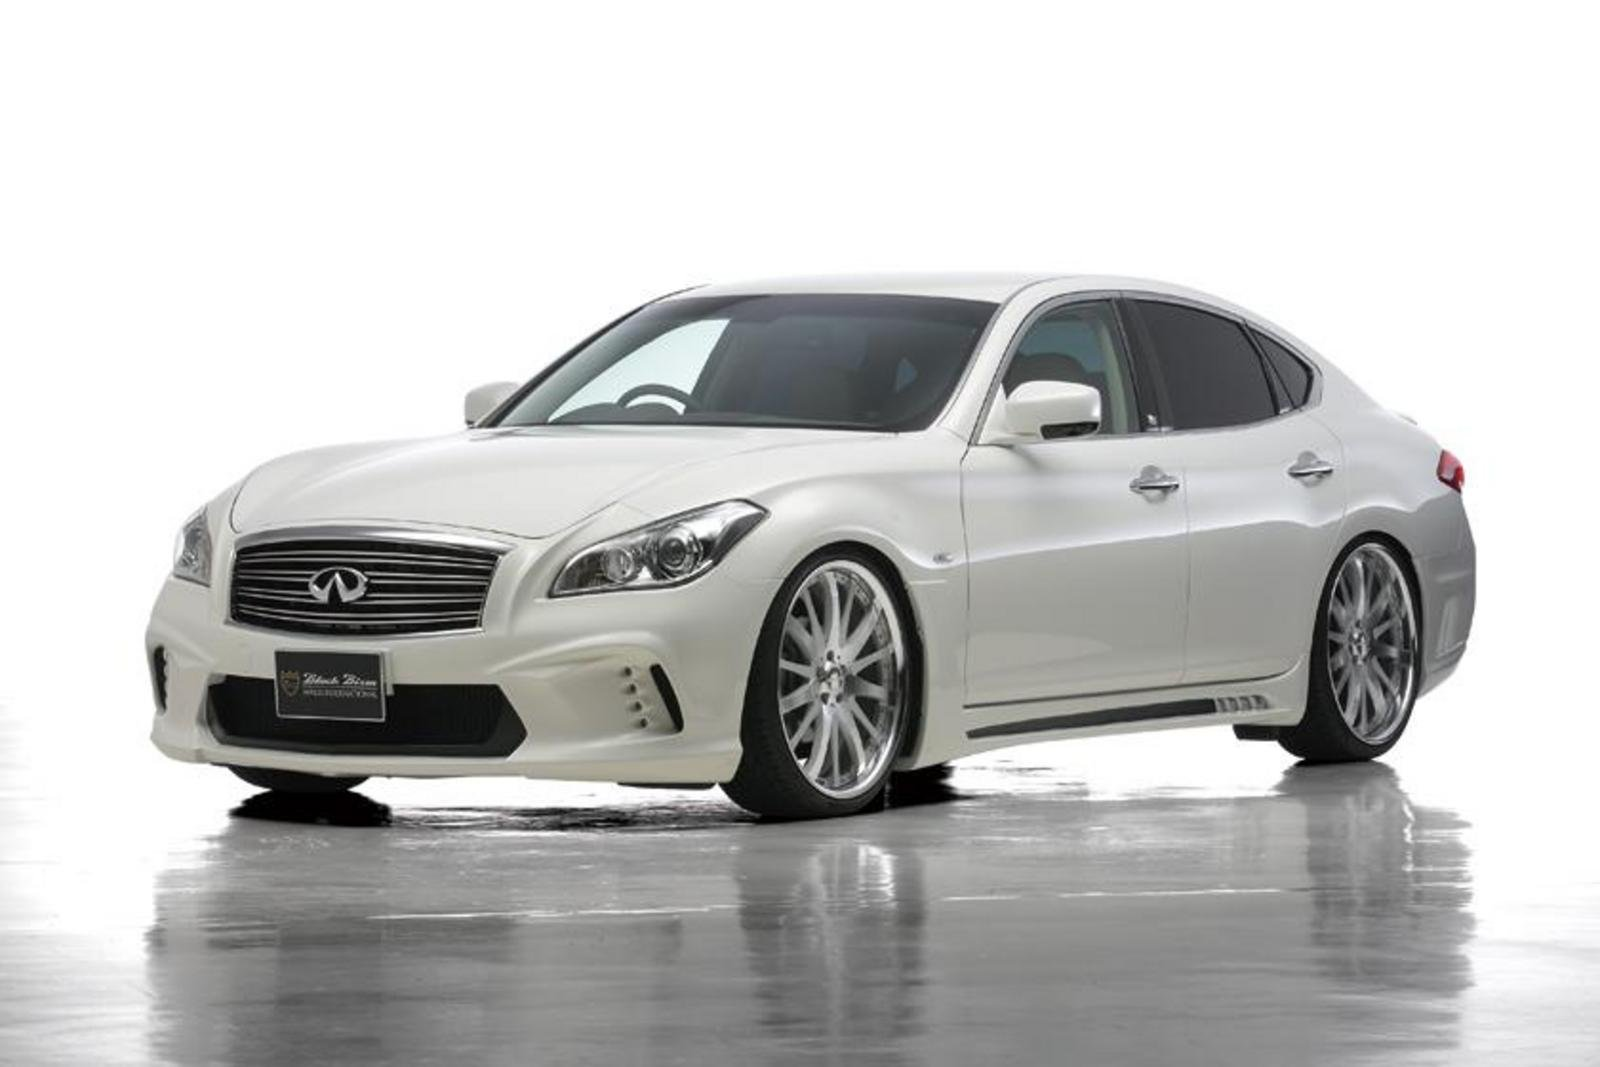 2013 Infiniti M Black Bison By Wald International Review ...